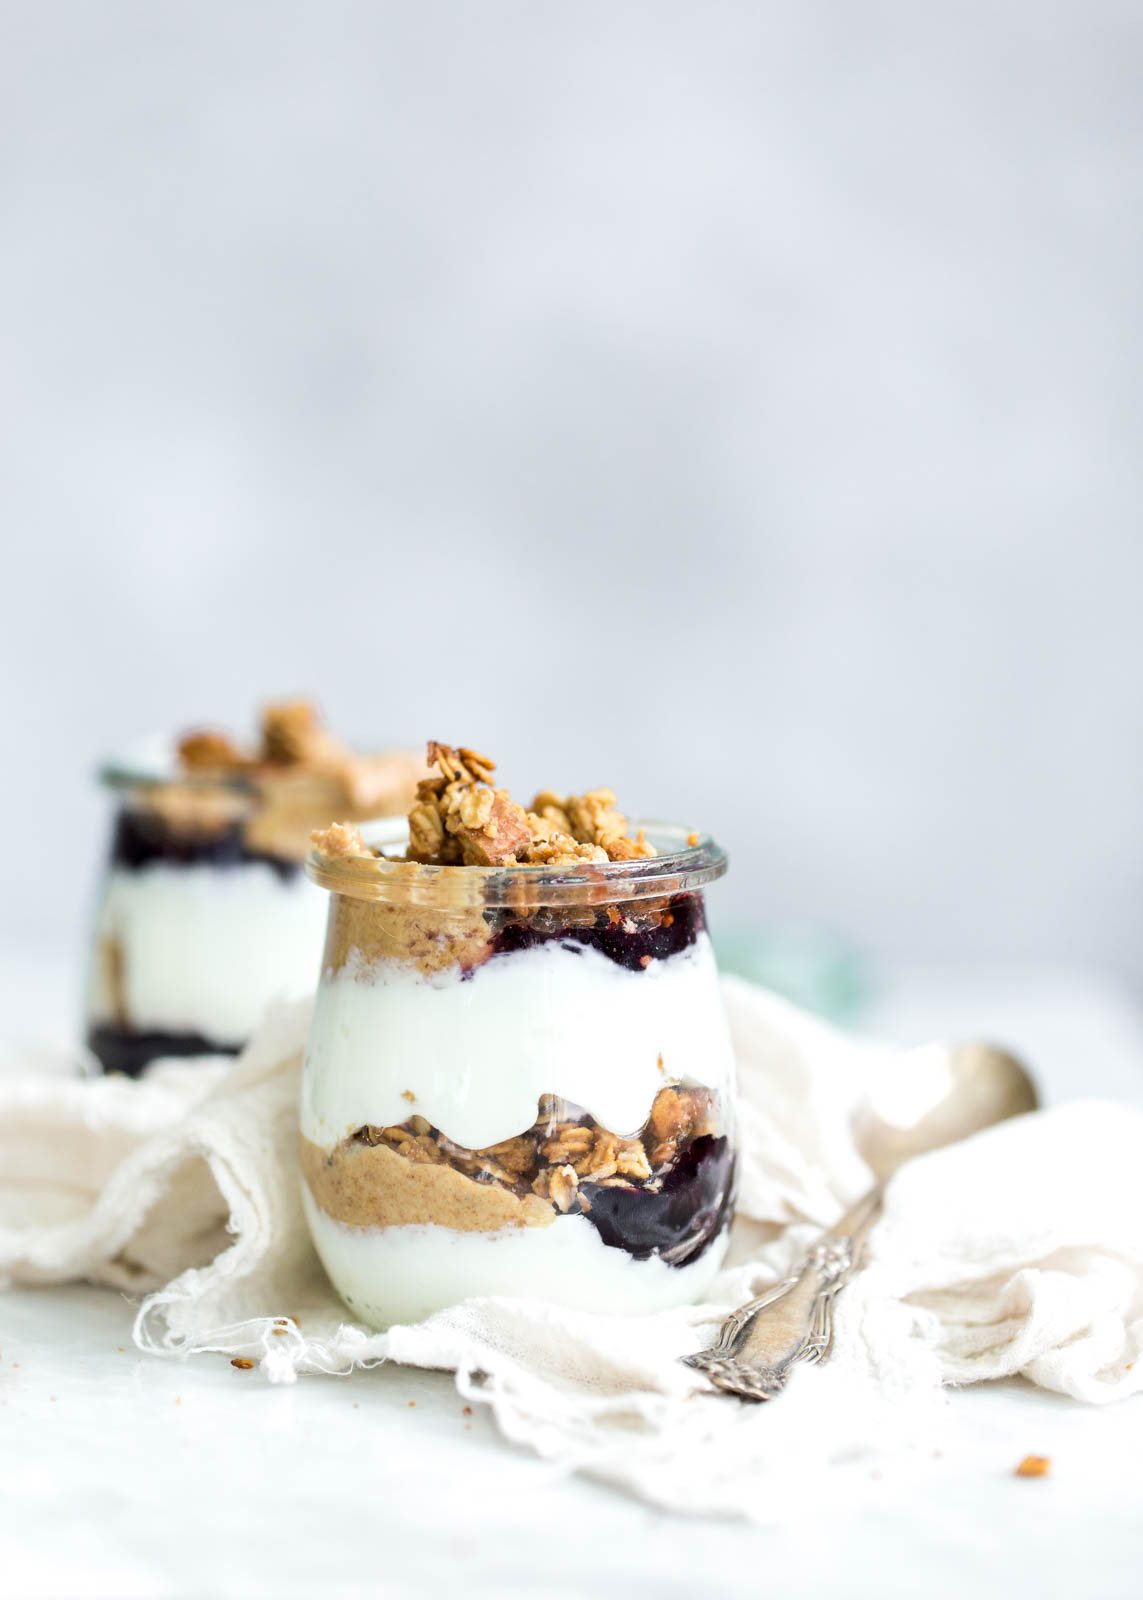 Peanut Butter and Jelly Yogurt Parfaits made with homemade peanut butter and honey granola and protein-packed Greek yogurt. YUM!